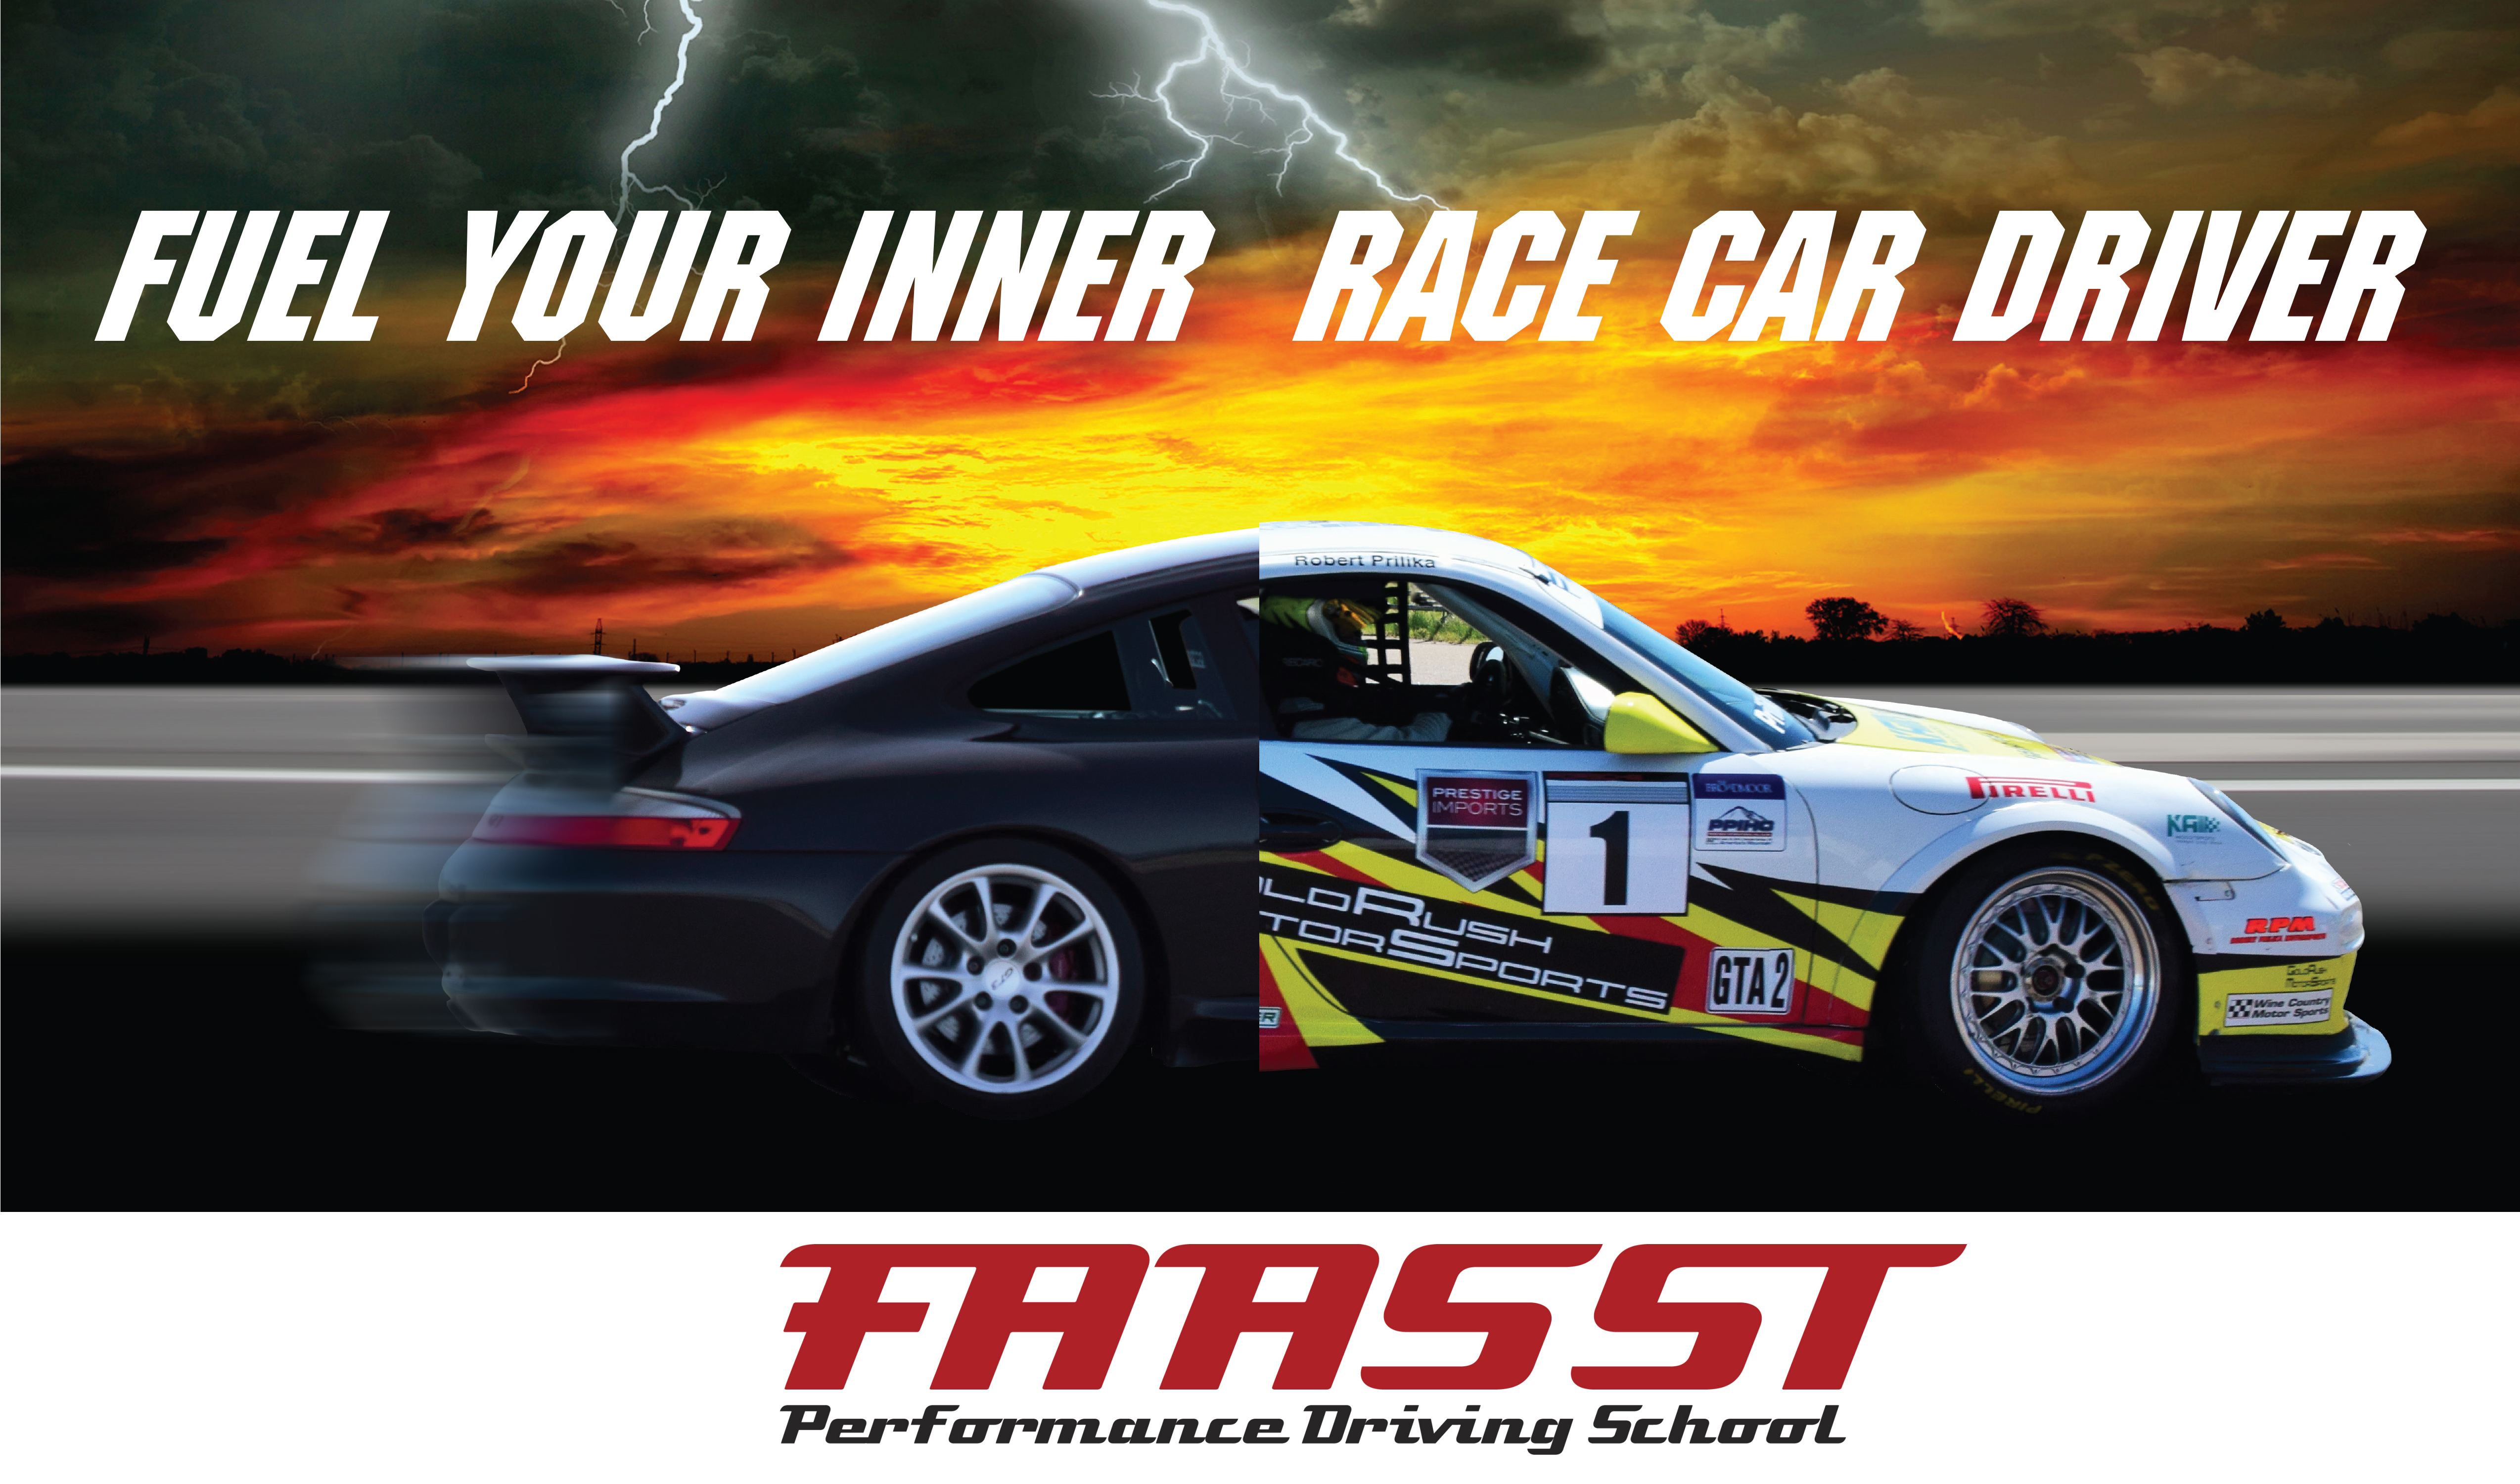 Performance Driving School >> Faasst Performance Driving School Auto Racing And High Performance